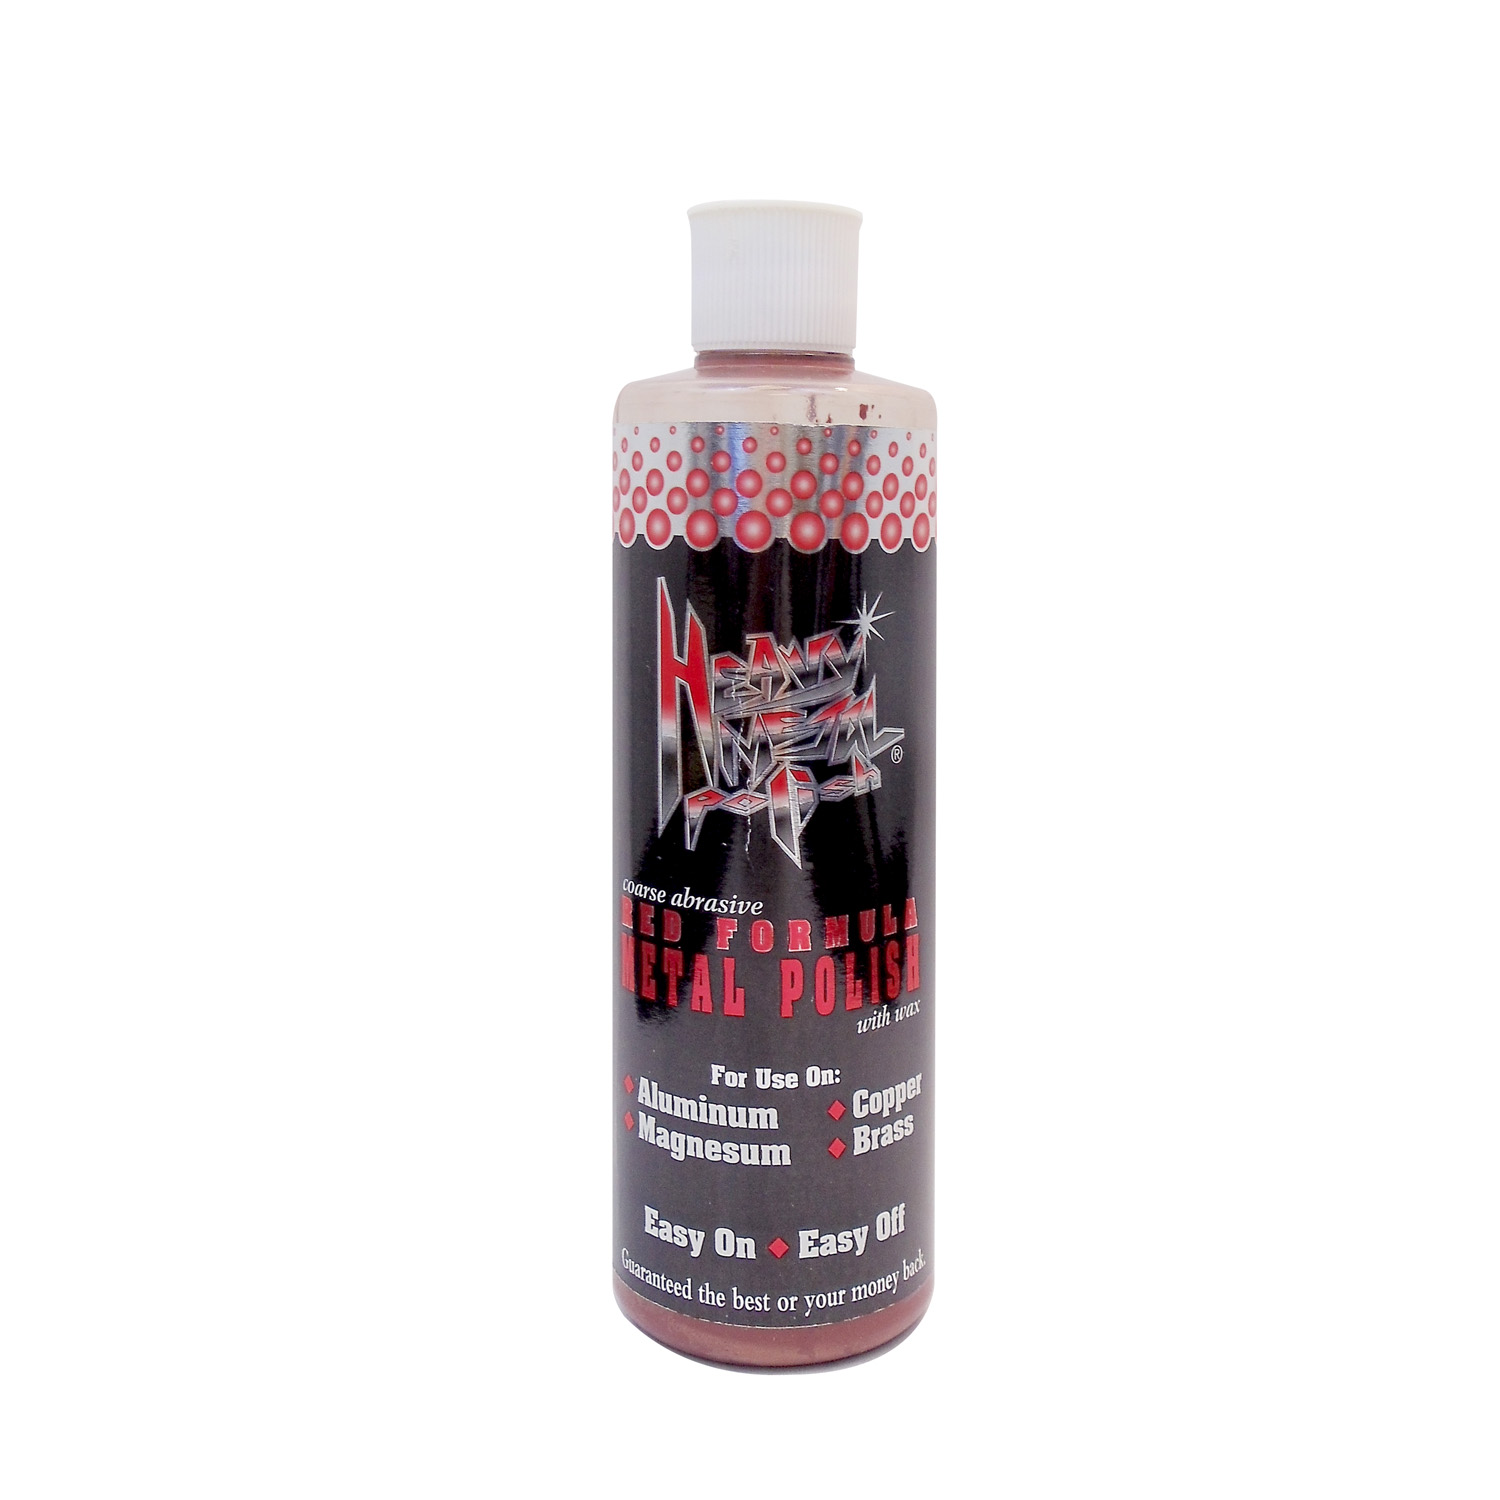 16 OUNCE BOTTLE OF HEAVY METAL POLISH - RED FORMULA FOR USE ON ALUMINUM, MAGNESIUM, COPPER & BRASS